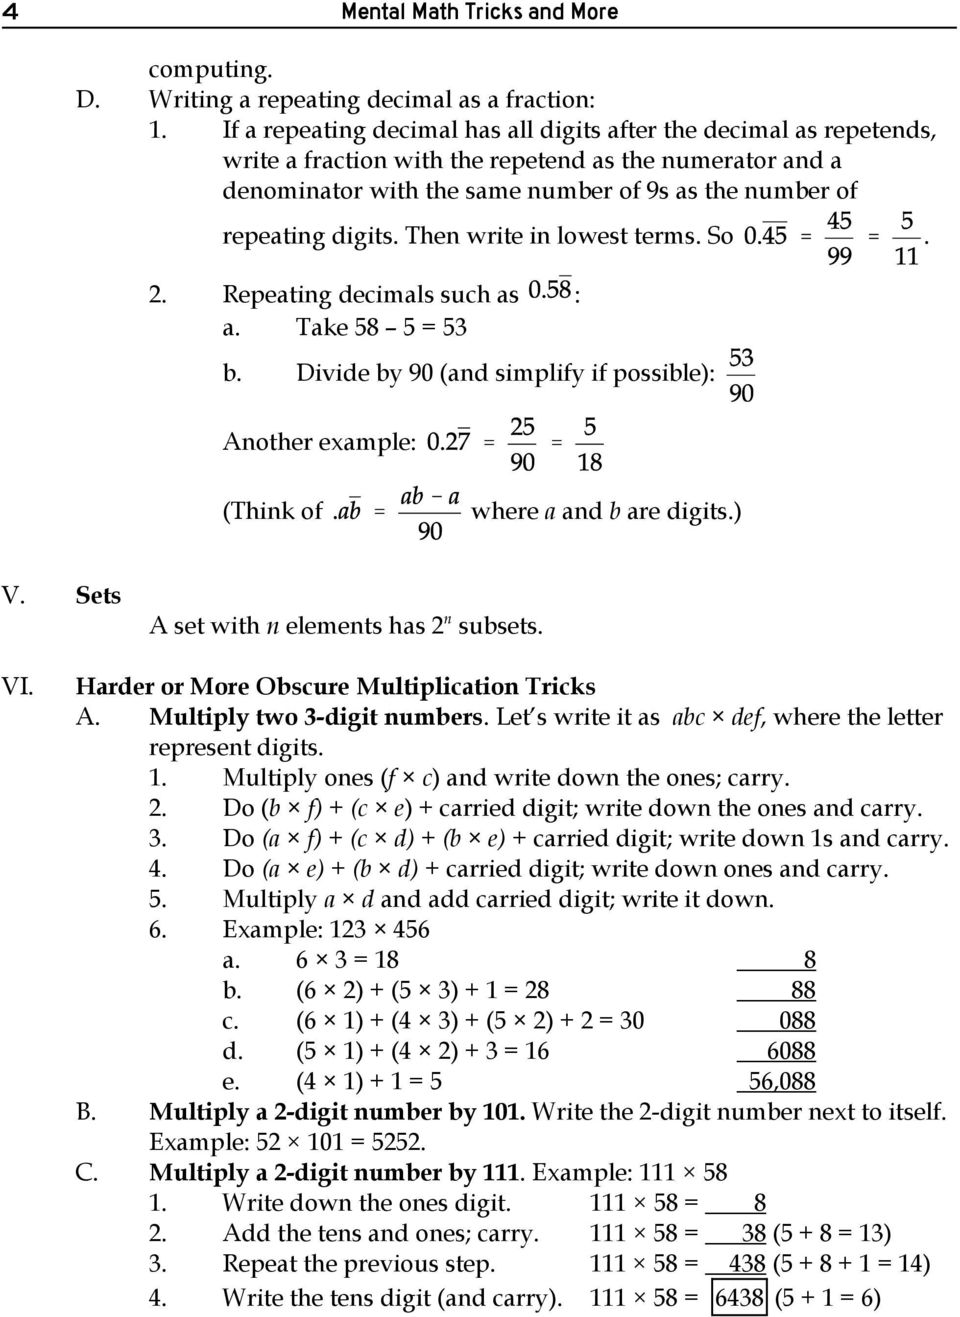 Mental math tricks and more pdf digits then write in lowest terms so 2 repeating decimals such as fandeluxe Images